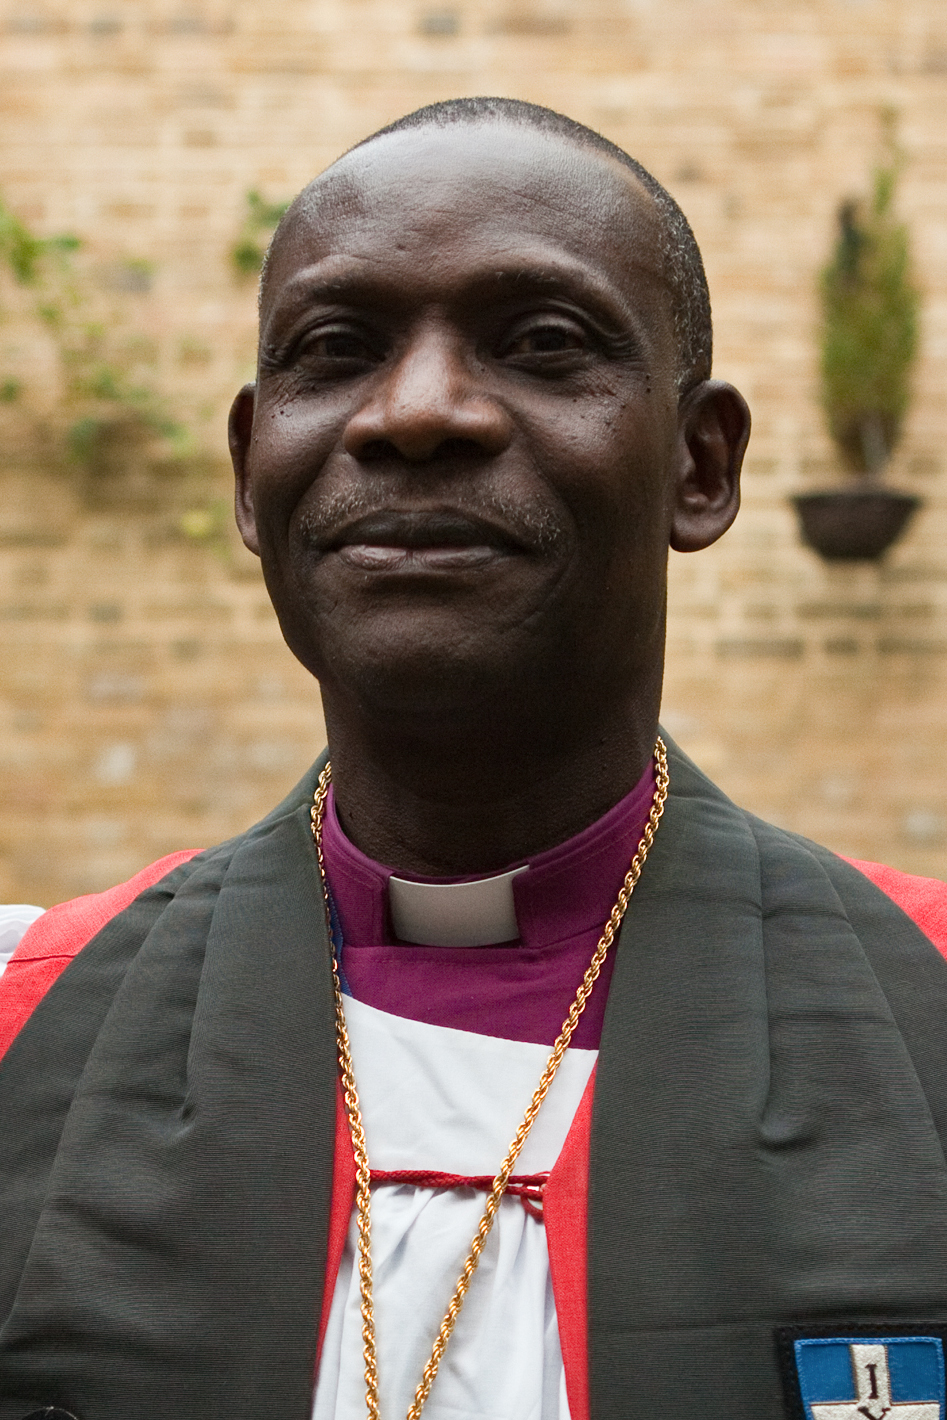 Anglican Communion Secretary General, Archbishop Josiah Idowu-Fearon